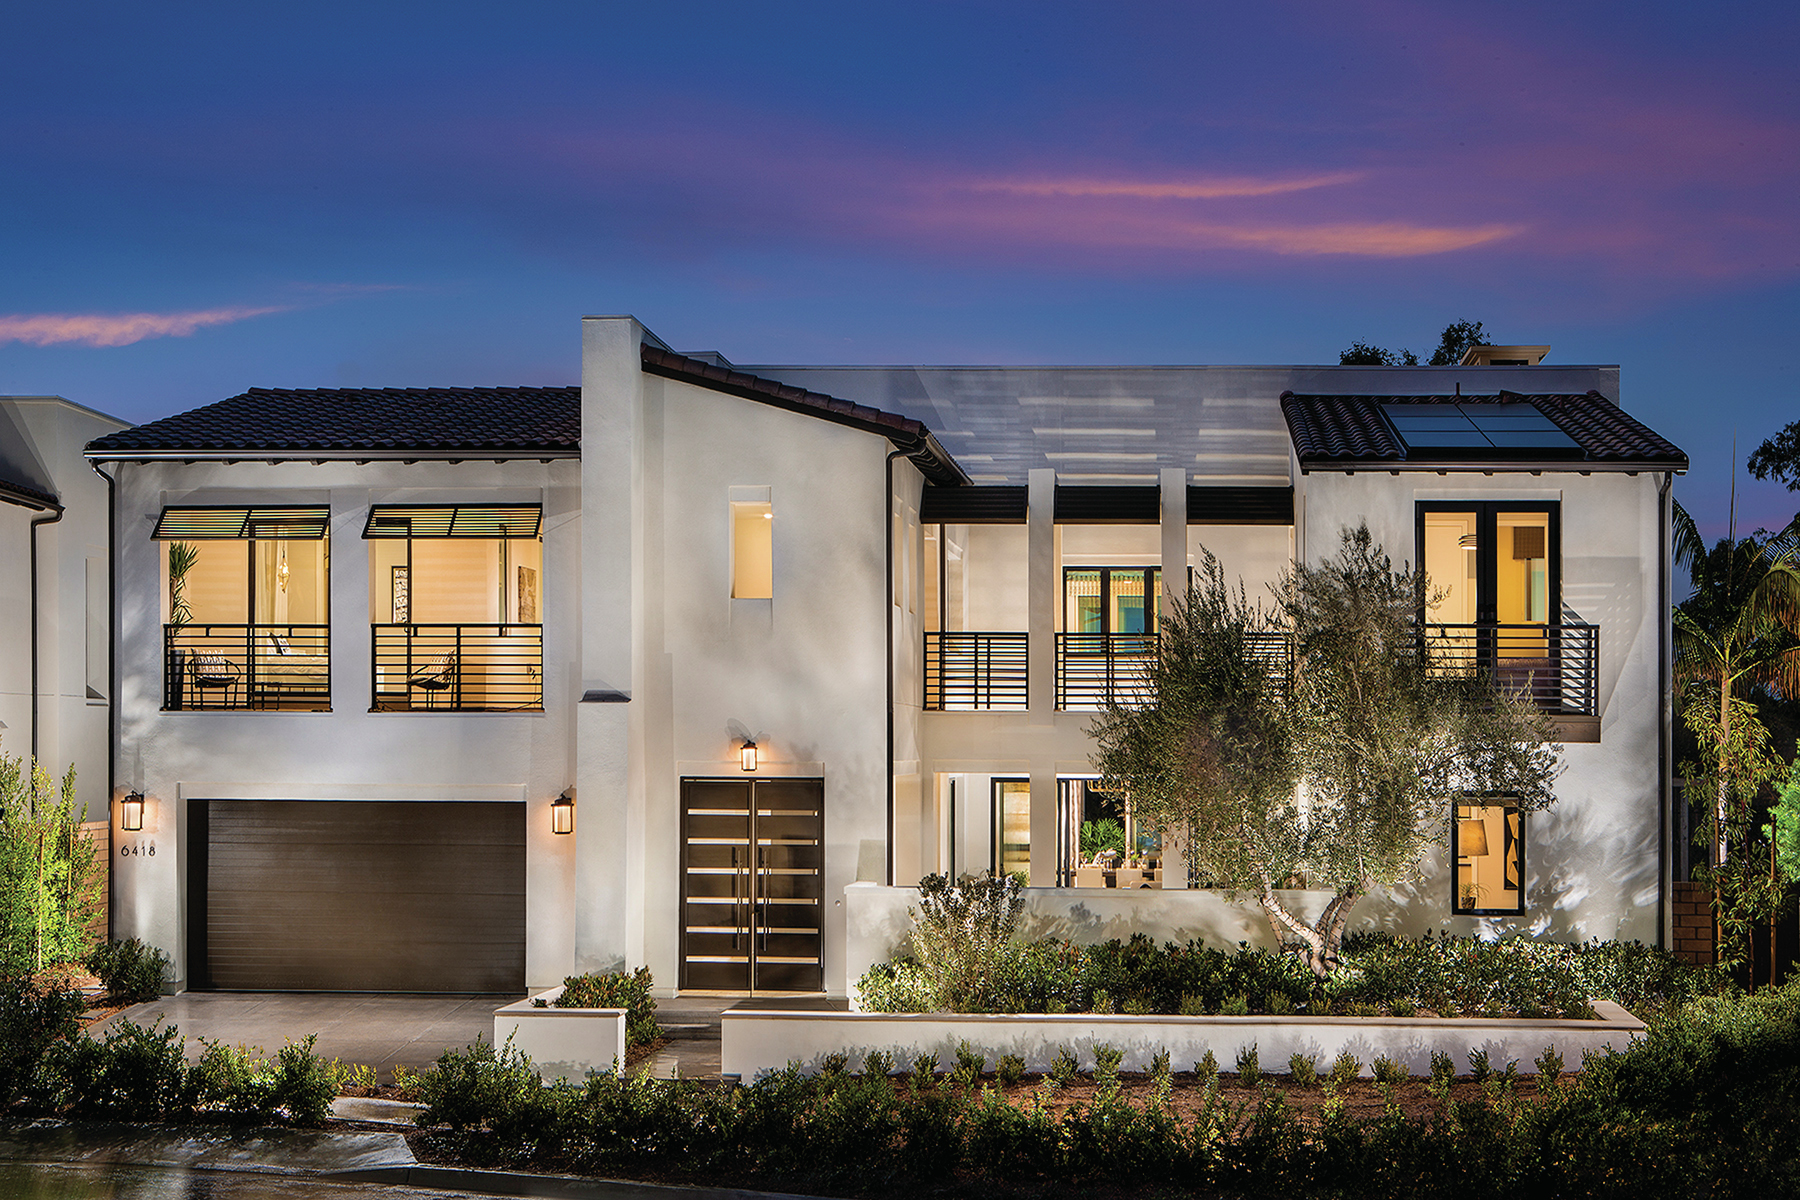 Home Builders Austin Rancho Santa Fe Retreat Offers Resort-style Living